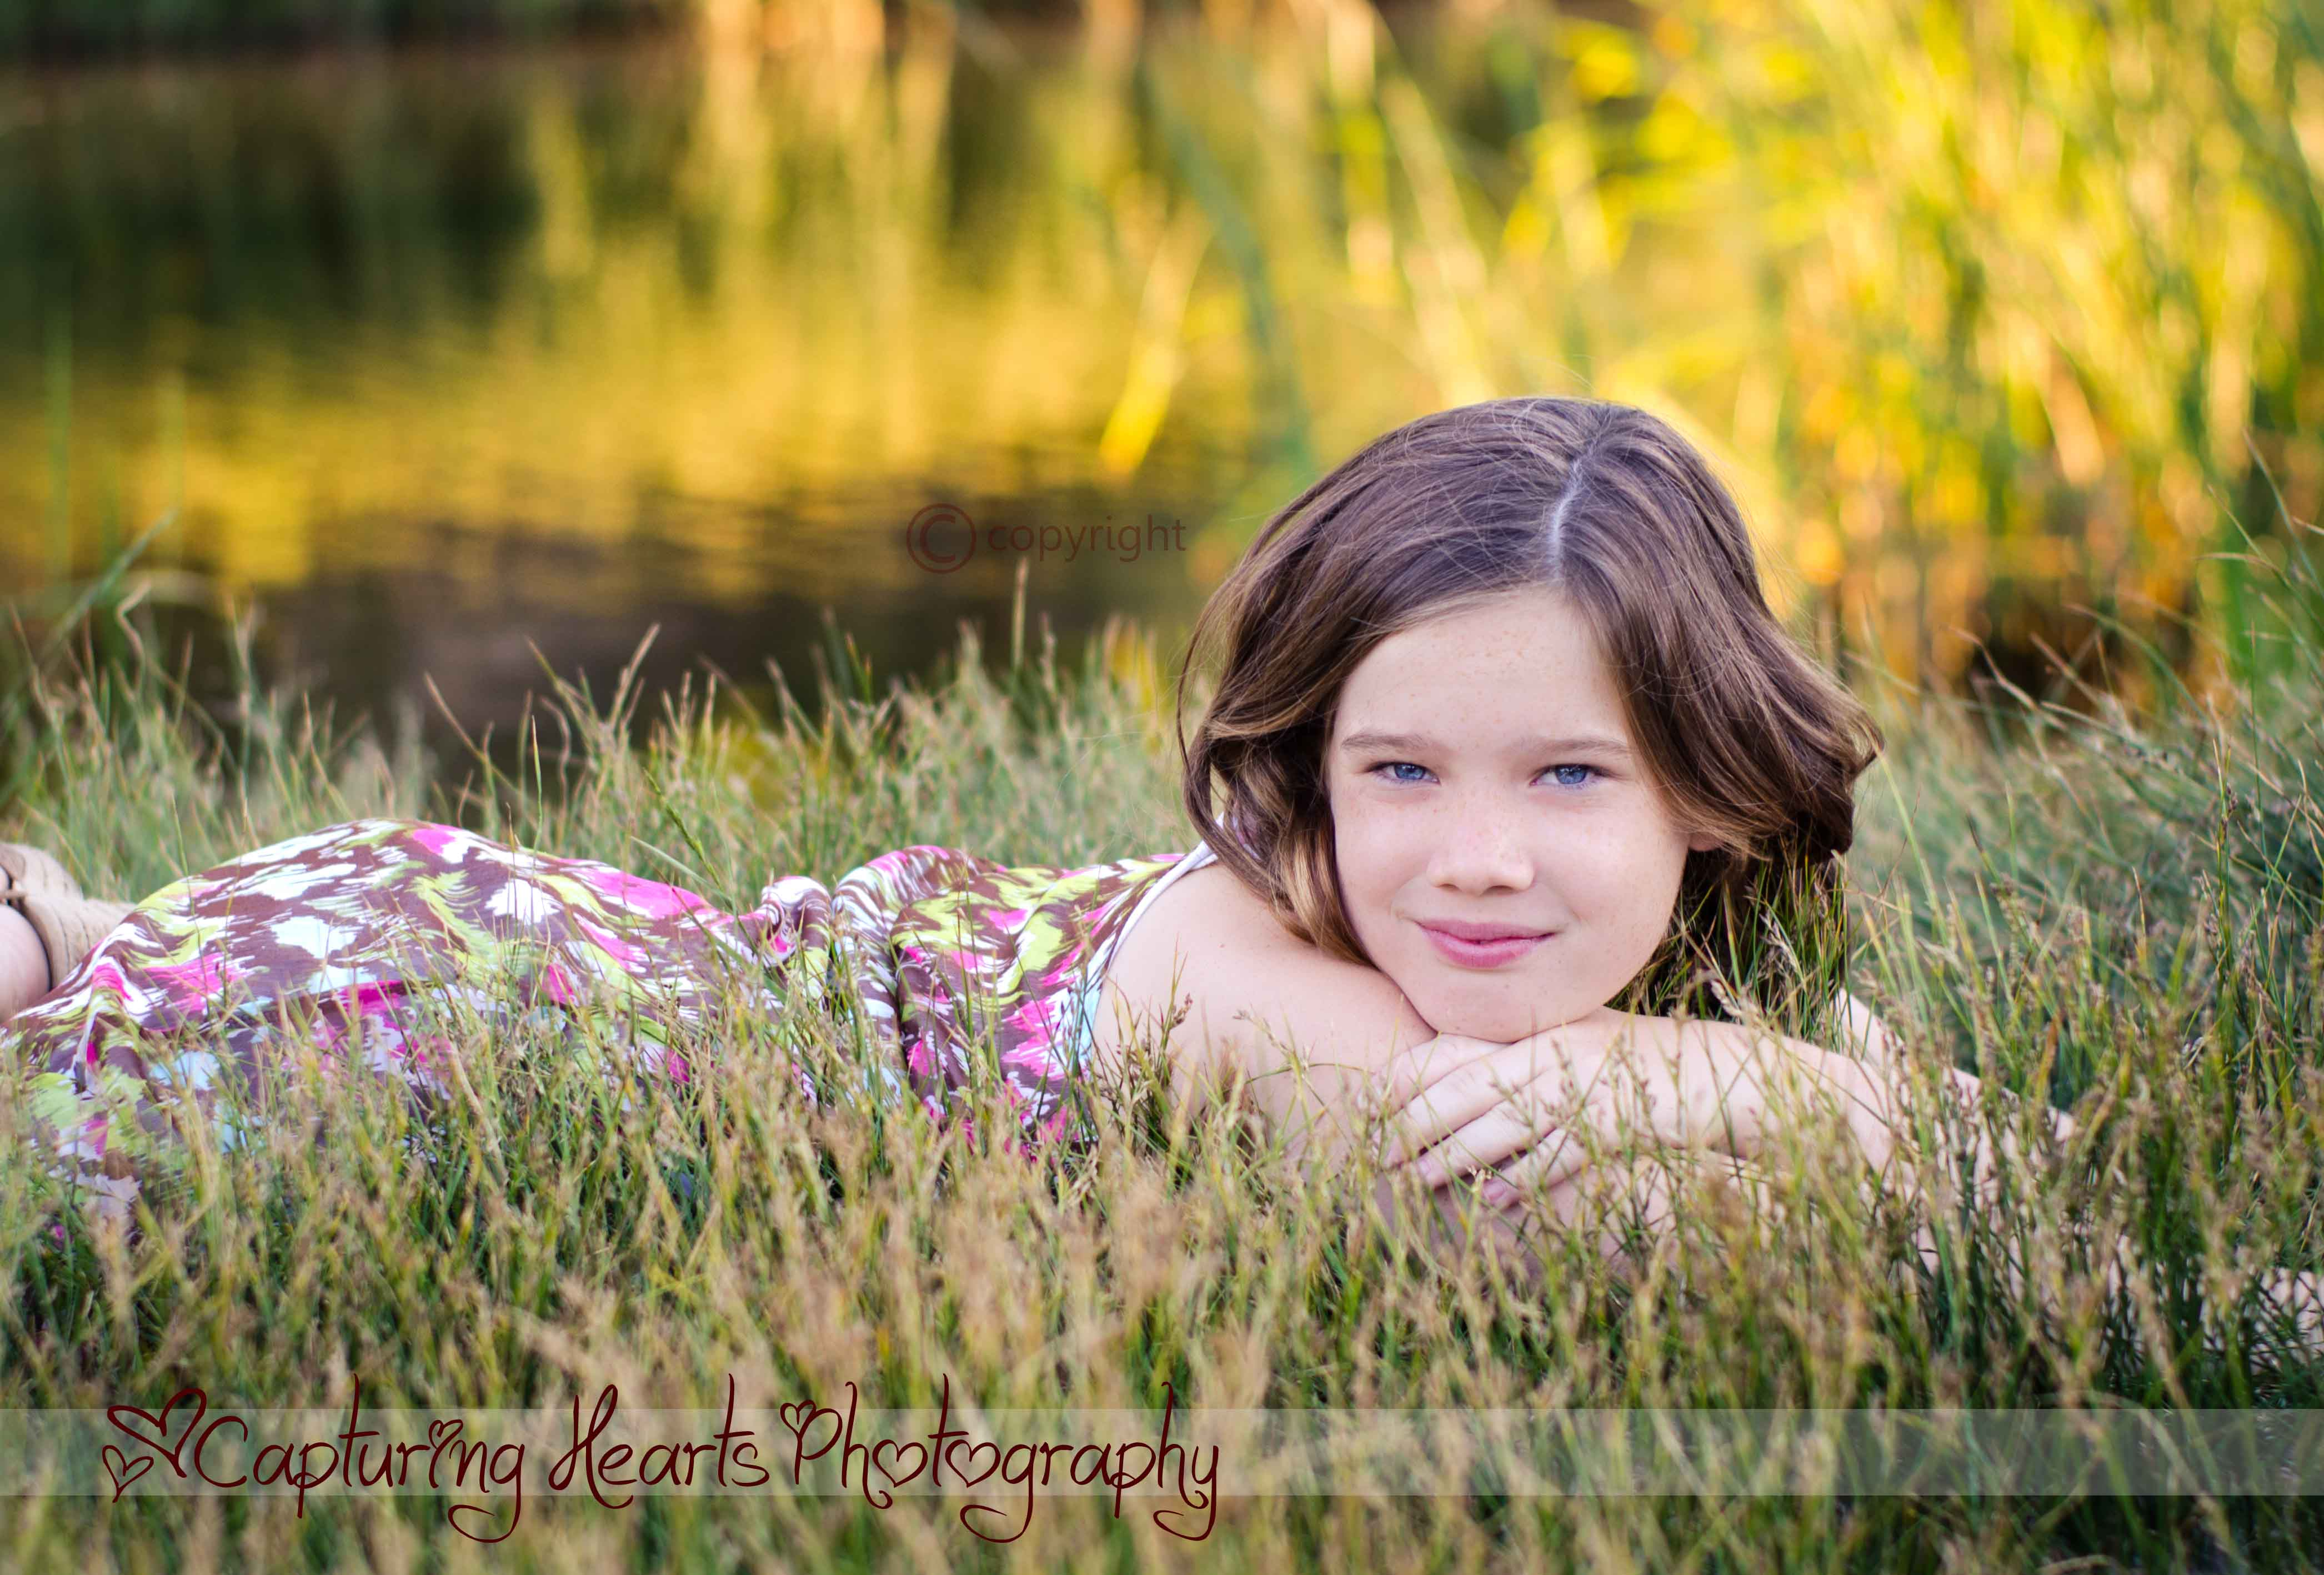 Model+Lake+Jackson+Wrightwood+CA+Photography+Child+COPYRIGHTLR